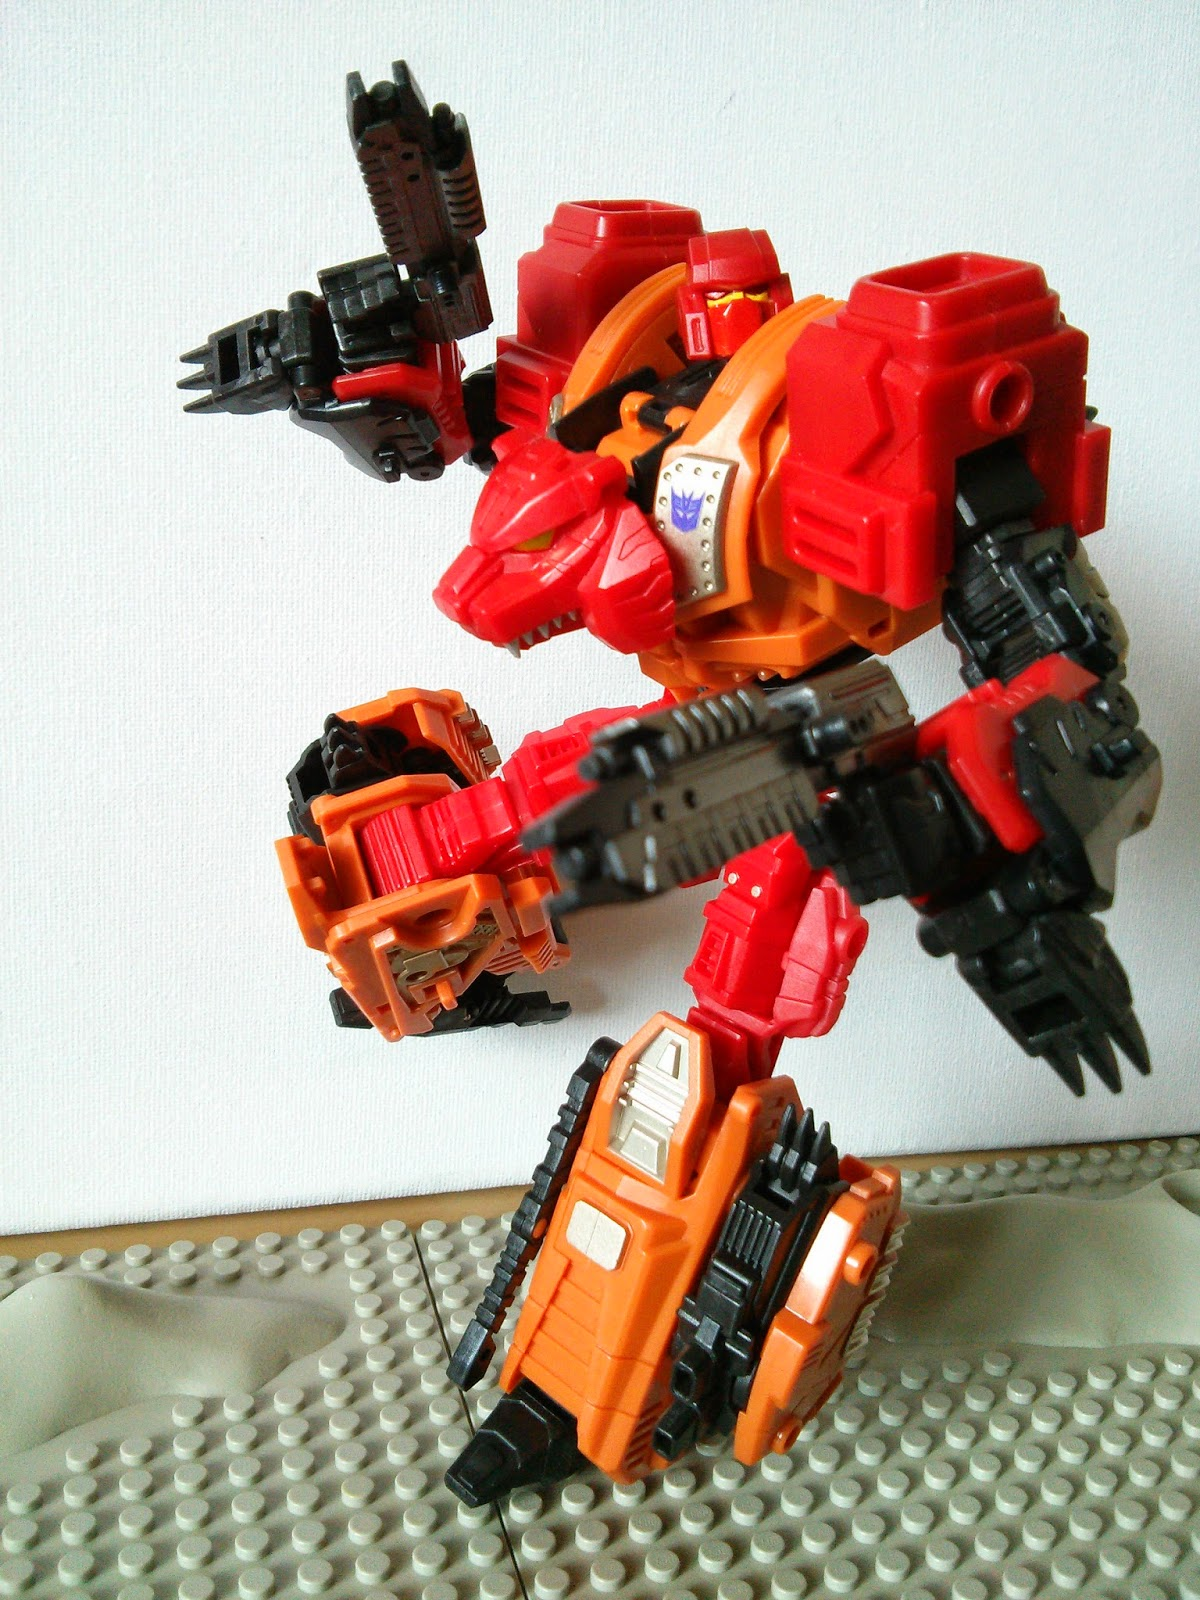 The arm of Feral Rex